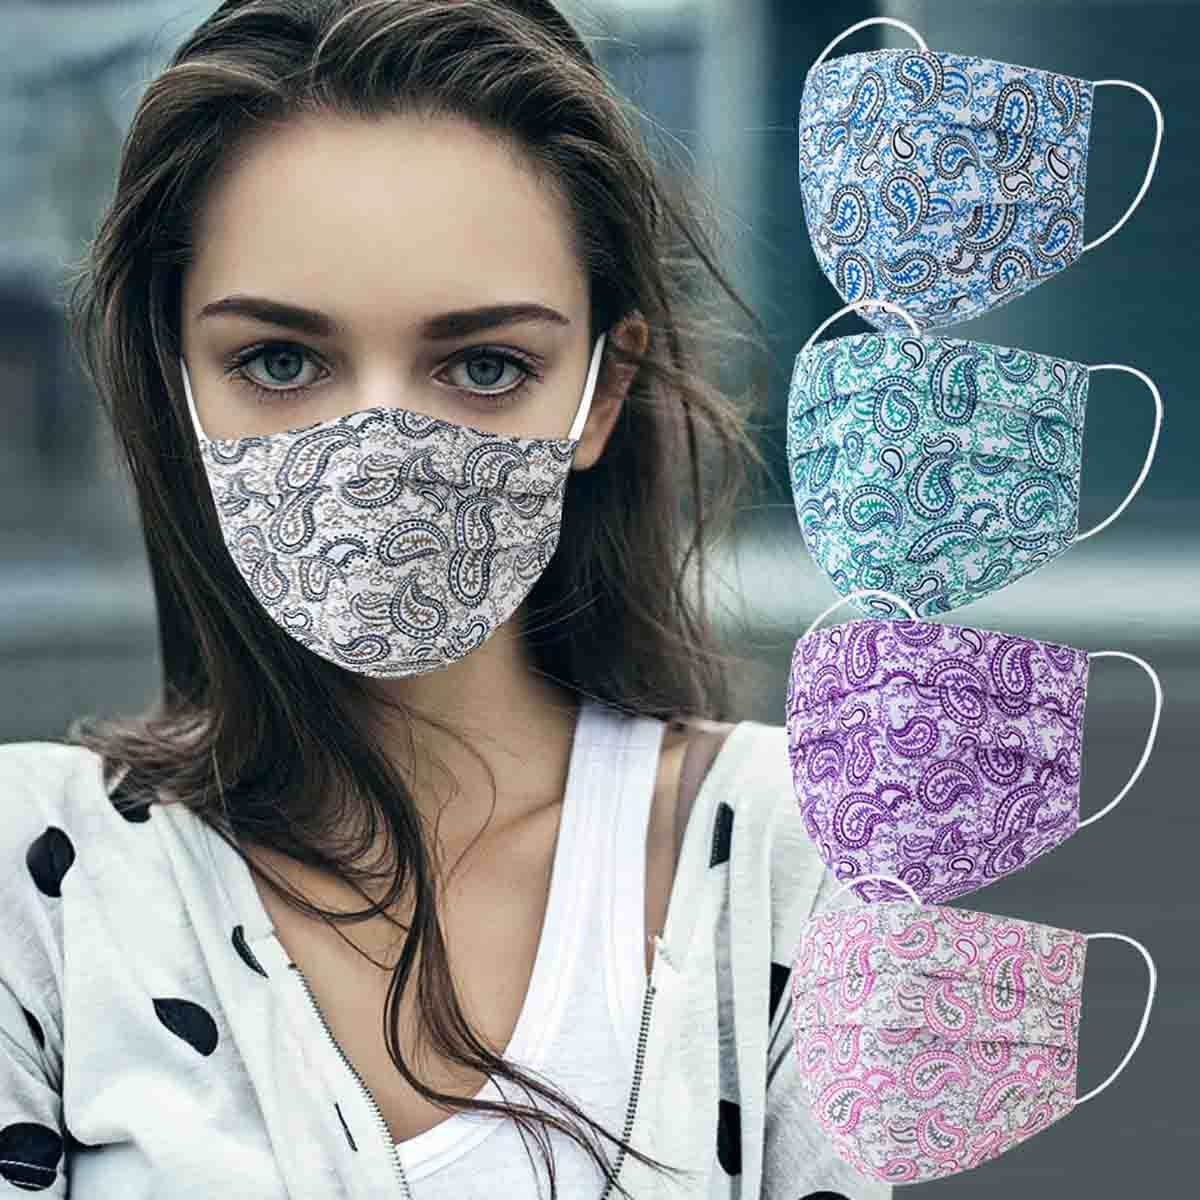 mascarilla de tela aliexpress estampado de colores